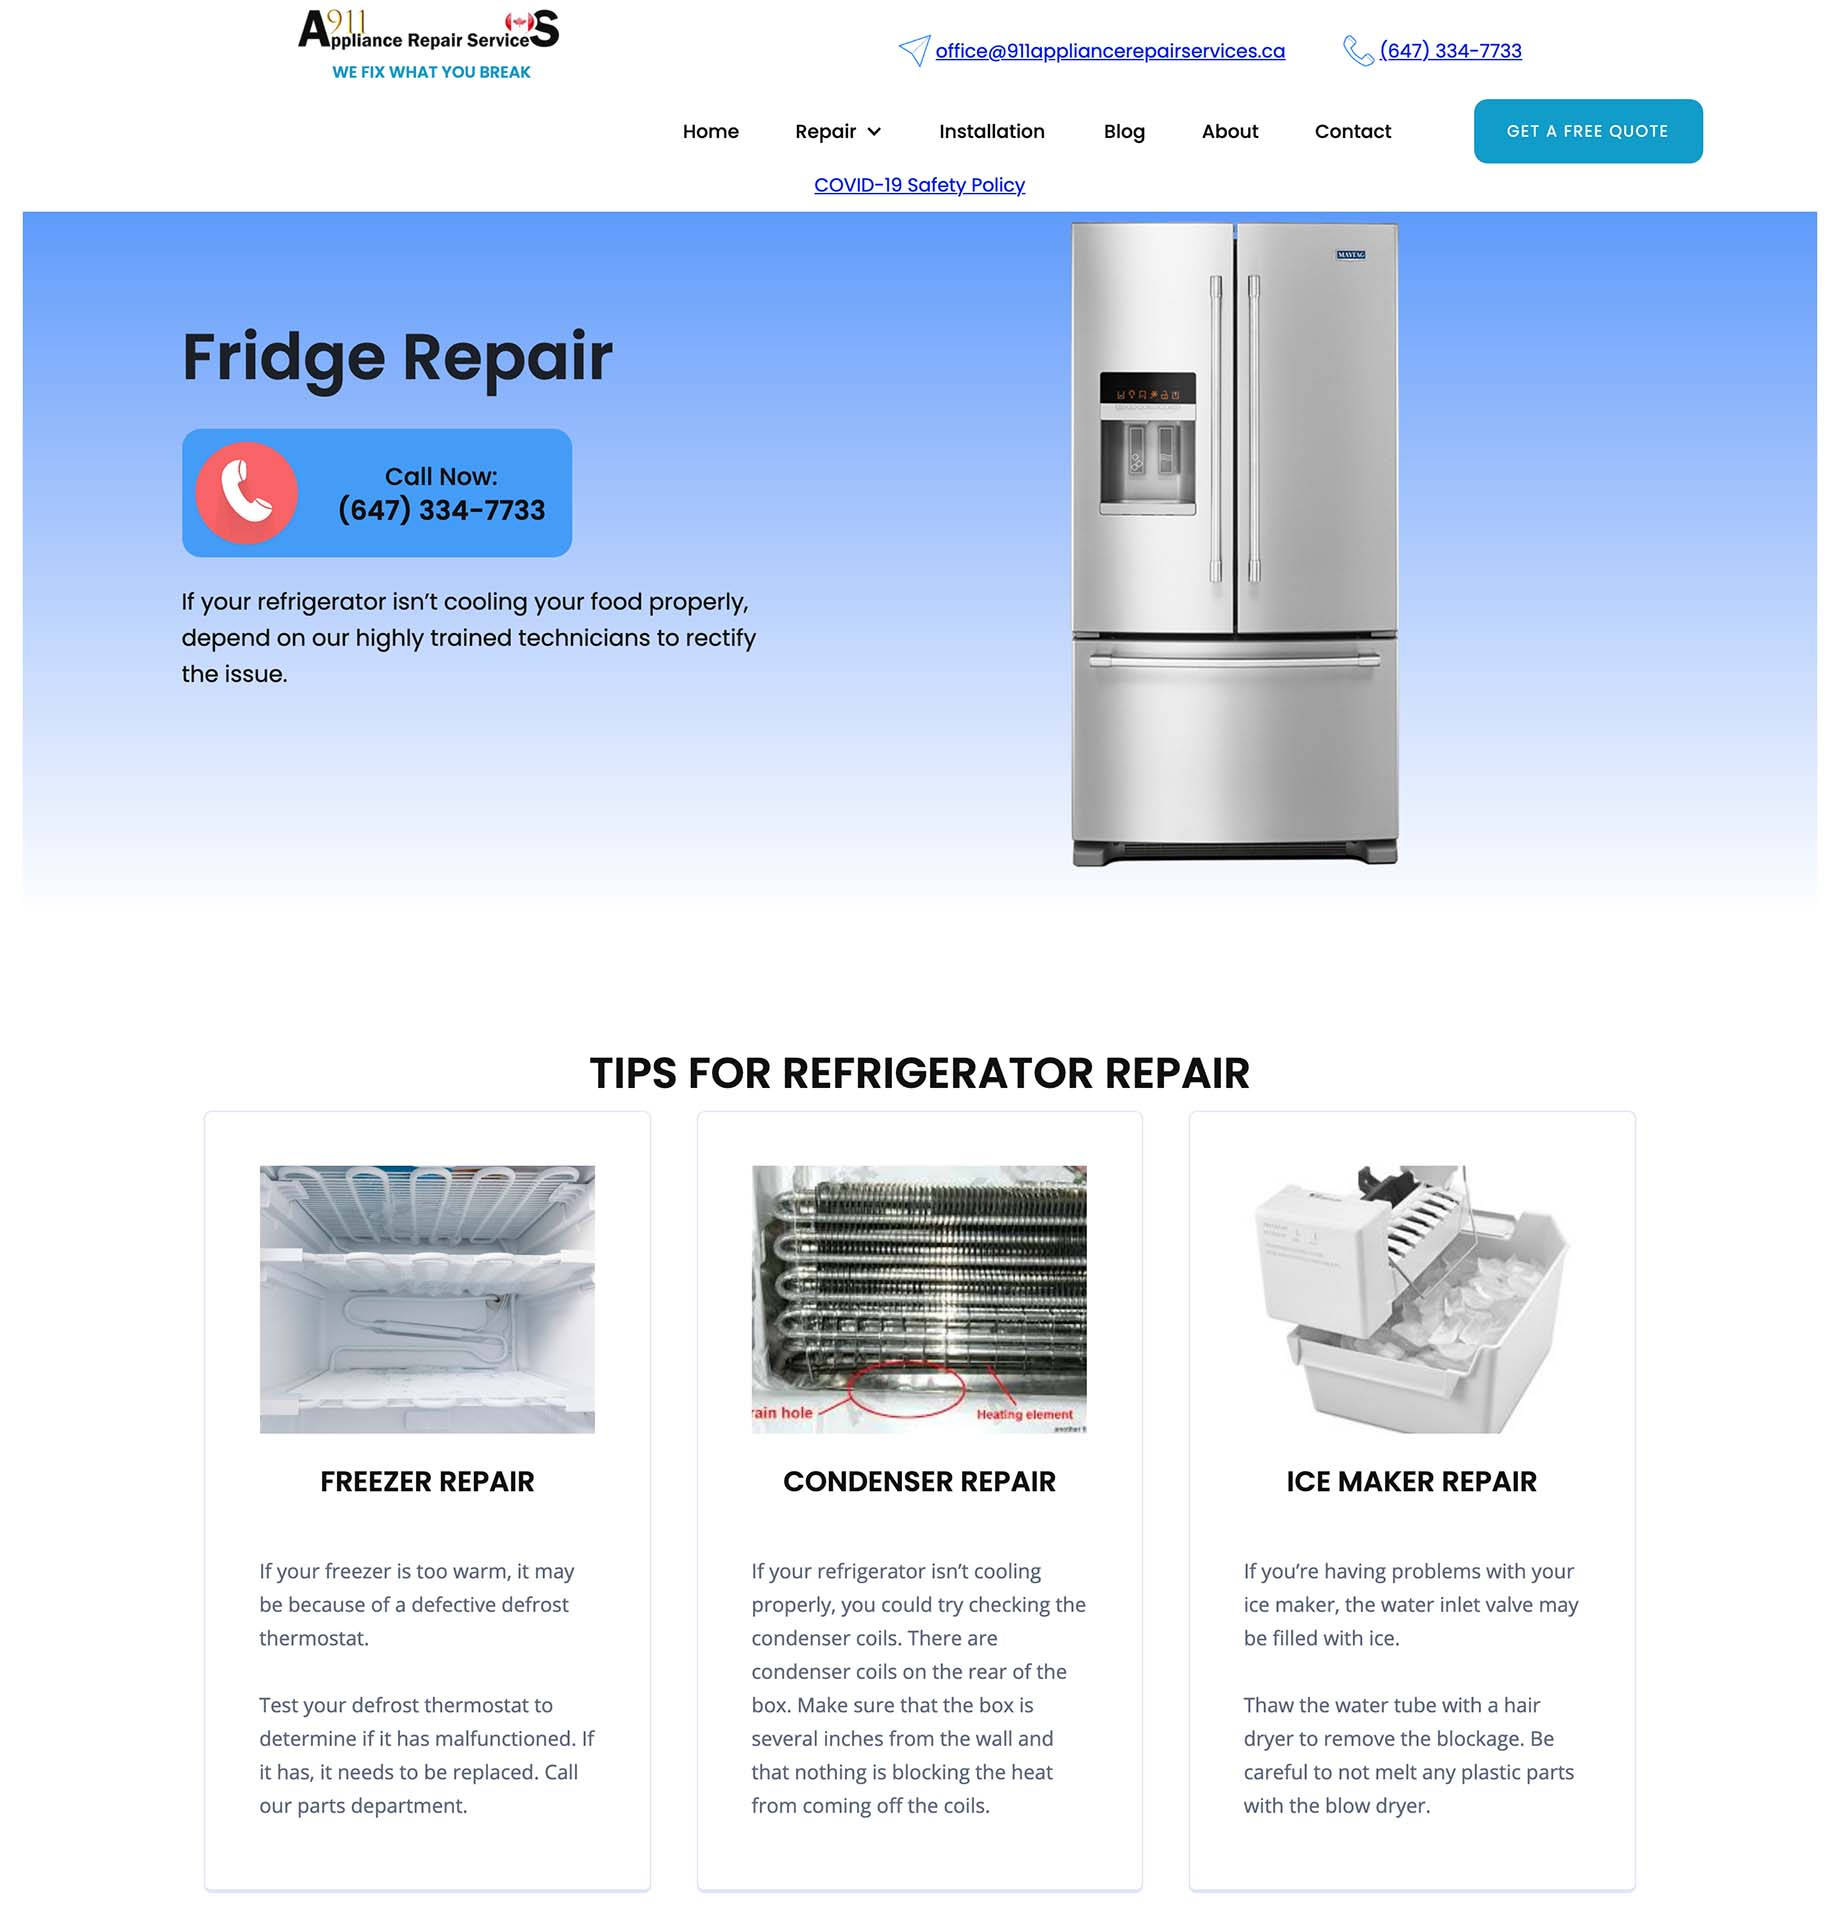 A sample page from the 911 Appliance Repair Services website showing fridge repair.